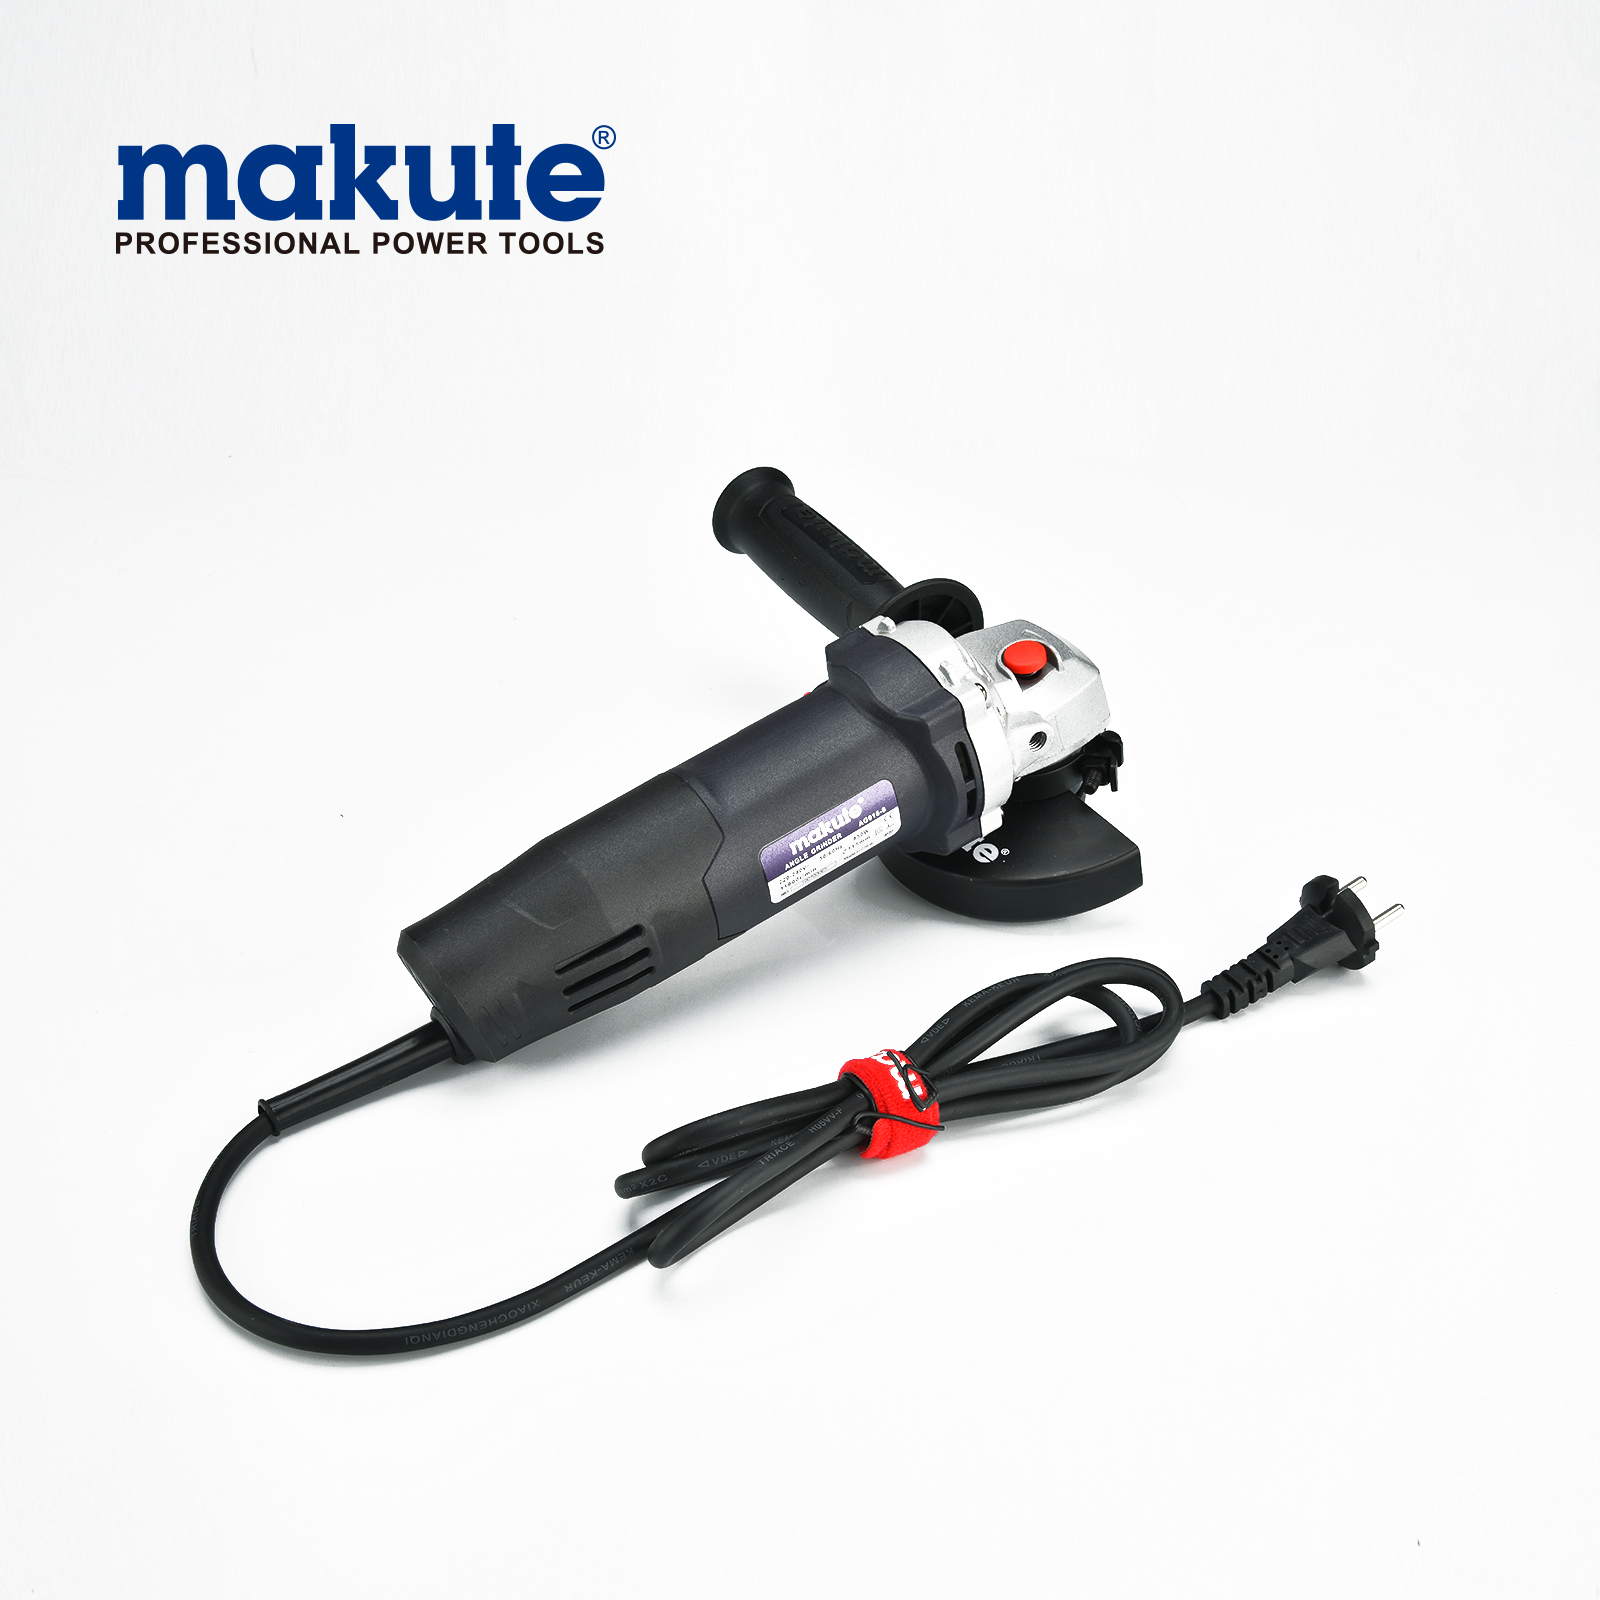 115mm small electric angle grinder for sharpening tools